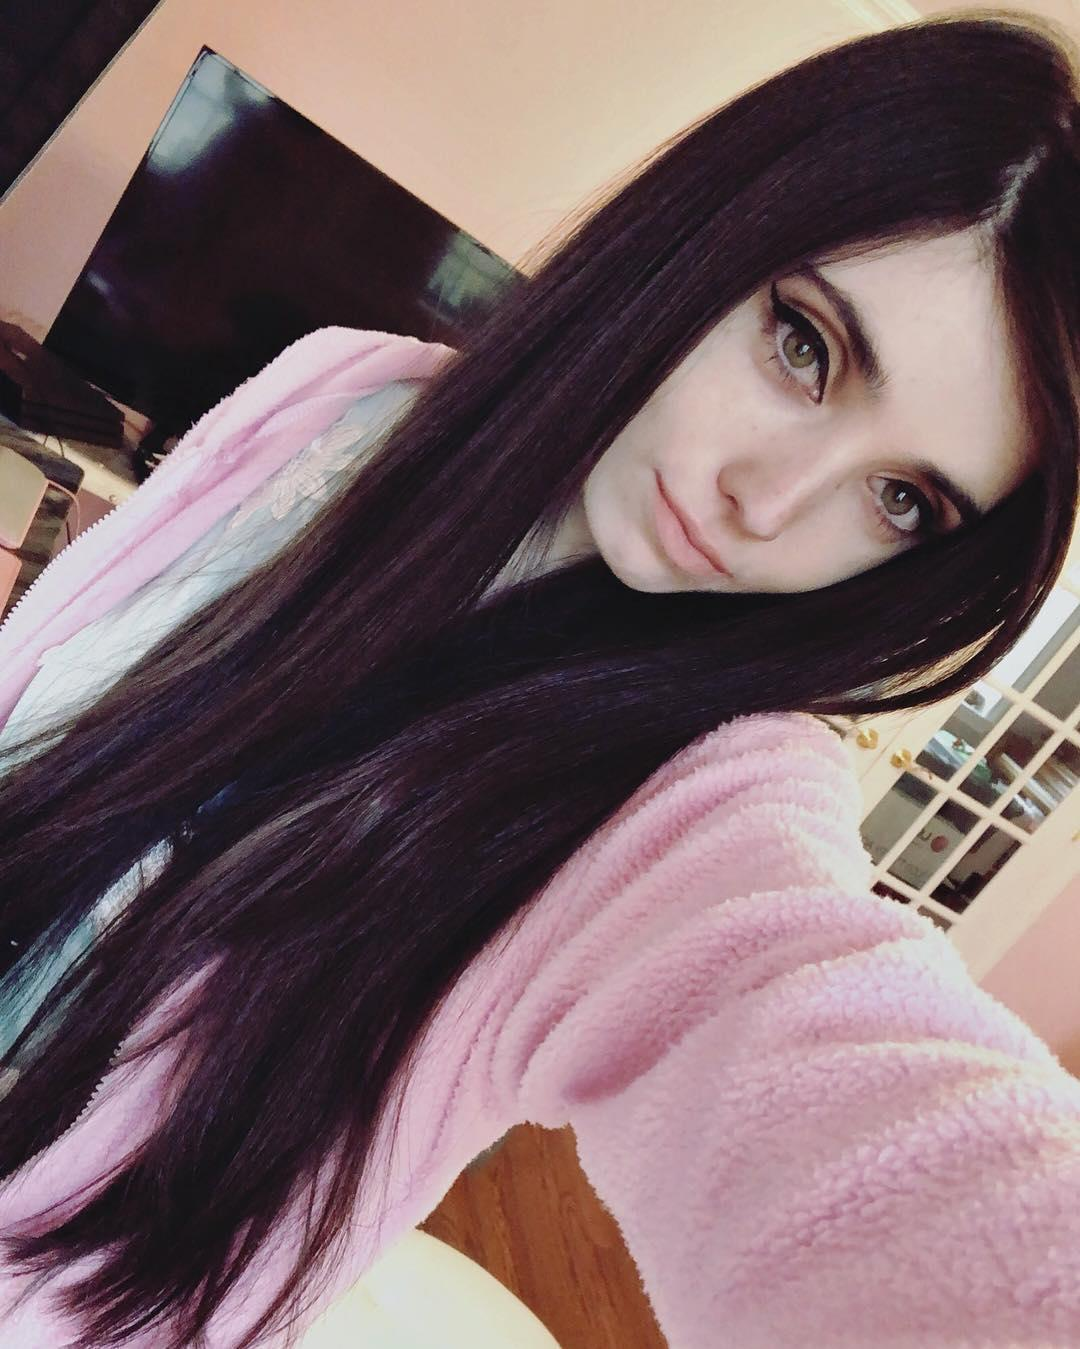 eugenia-cooney-recovery-return-to-youtube-1563805856163.jpg